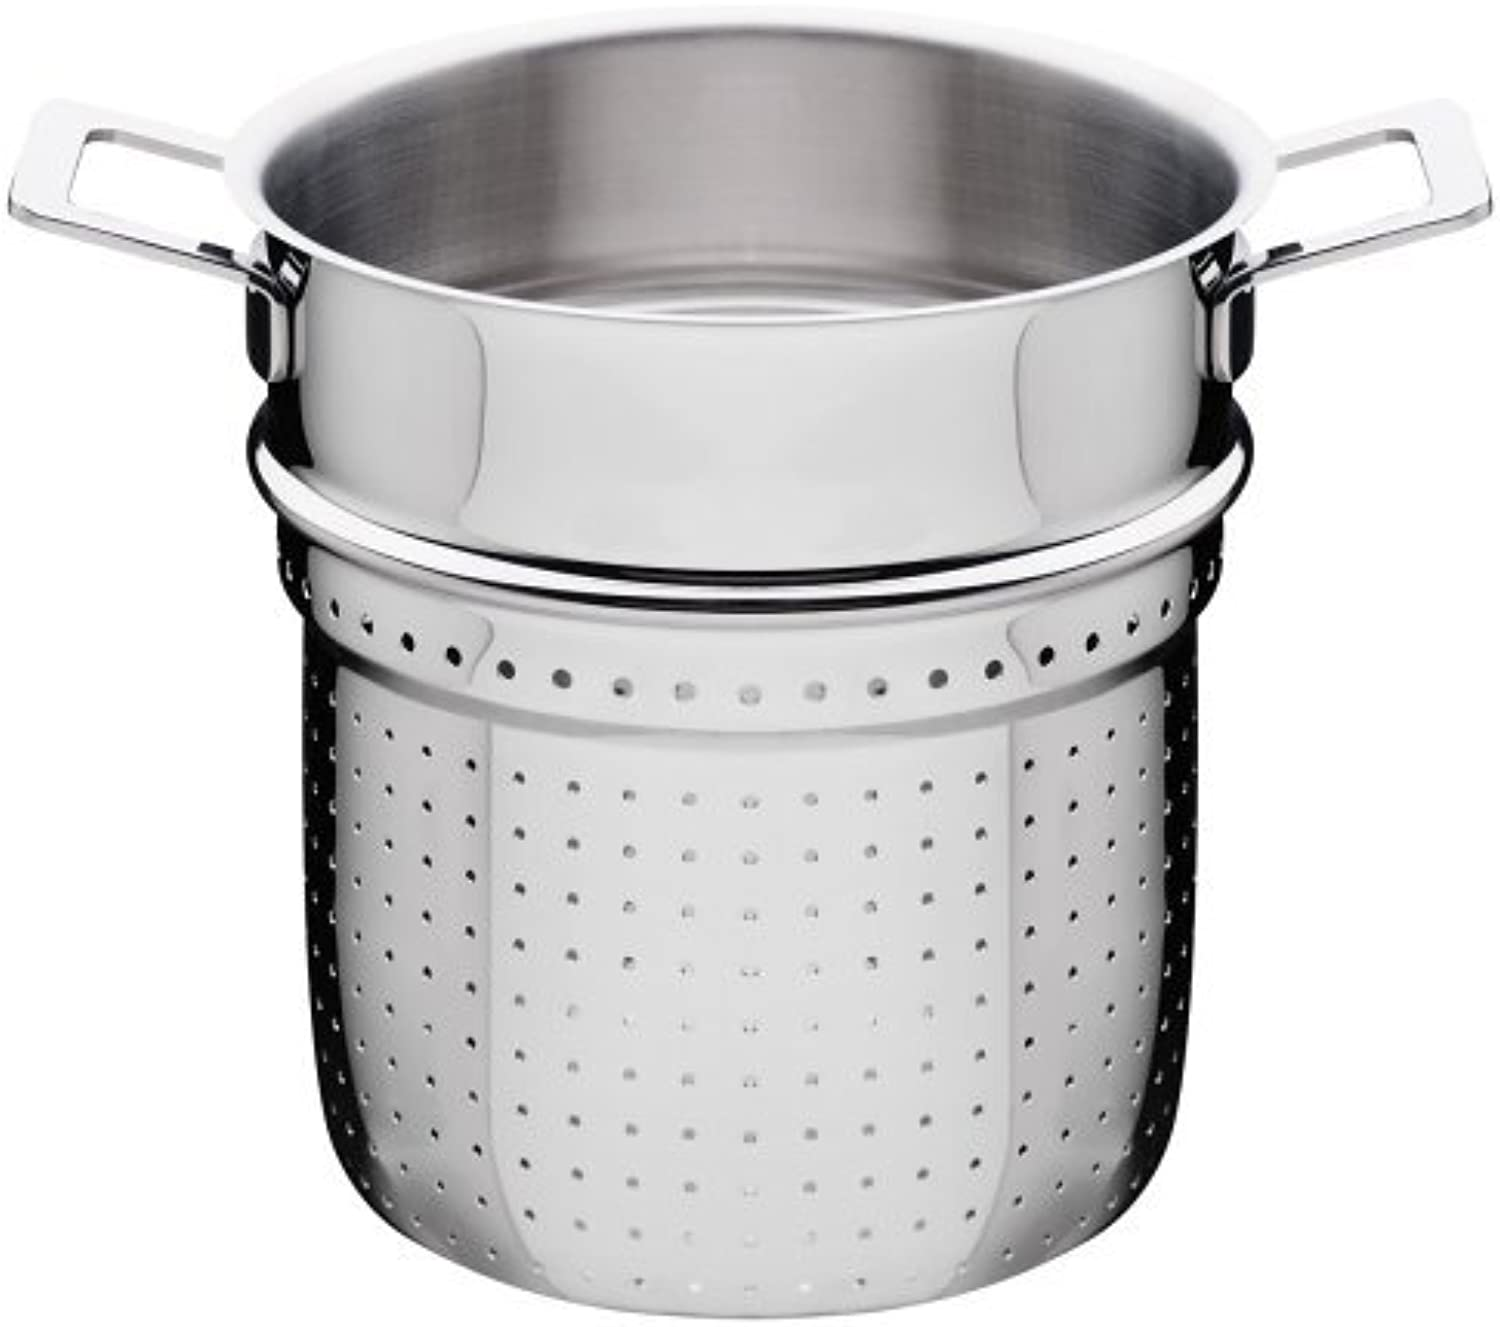 A Di Alessi,AJM306 POTS & PANS , Pierced basket in 18 10 stainless steel mirror polished,8 Inch